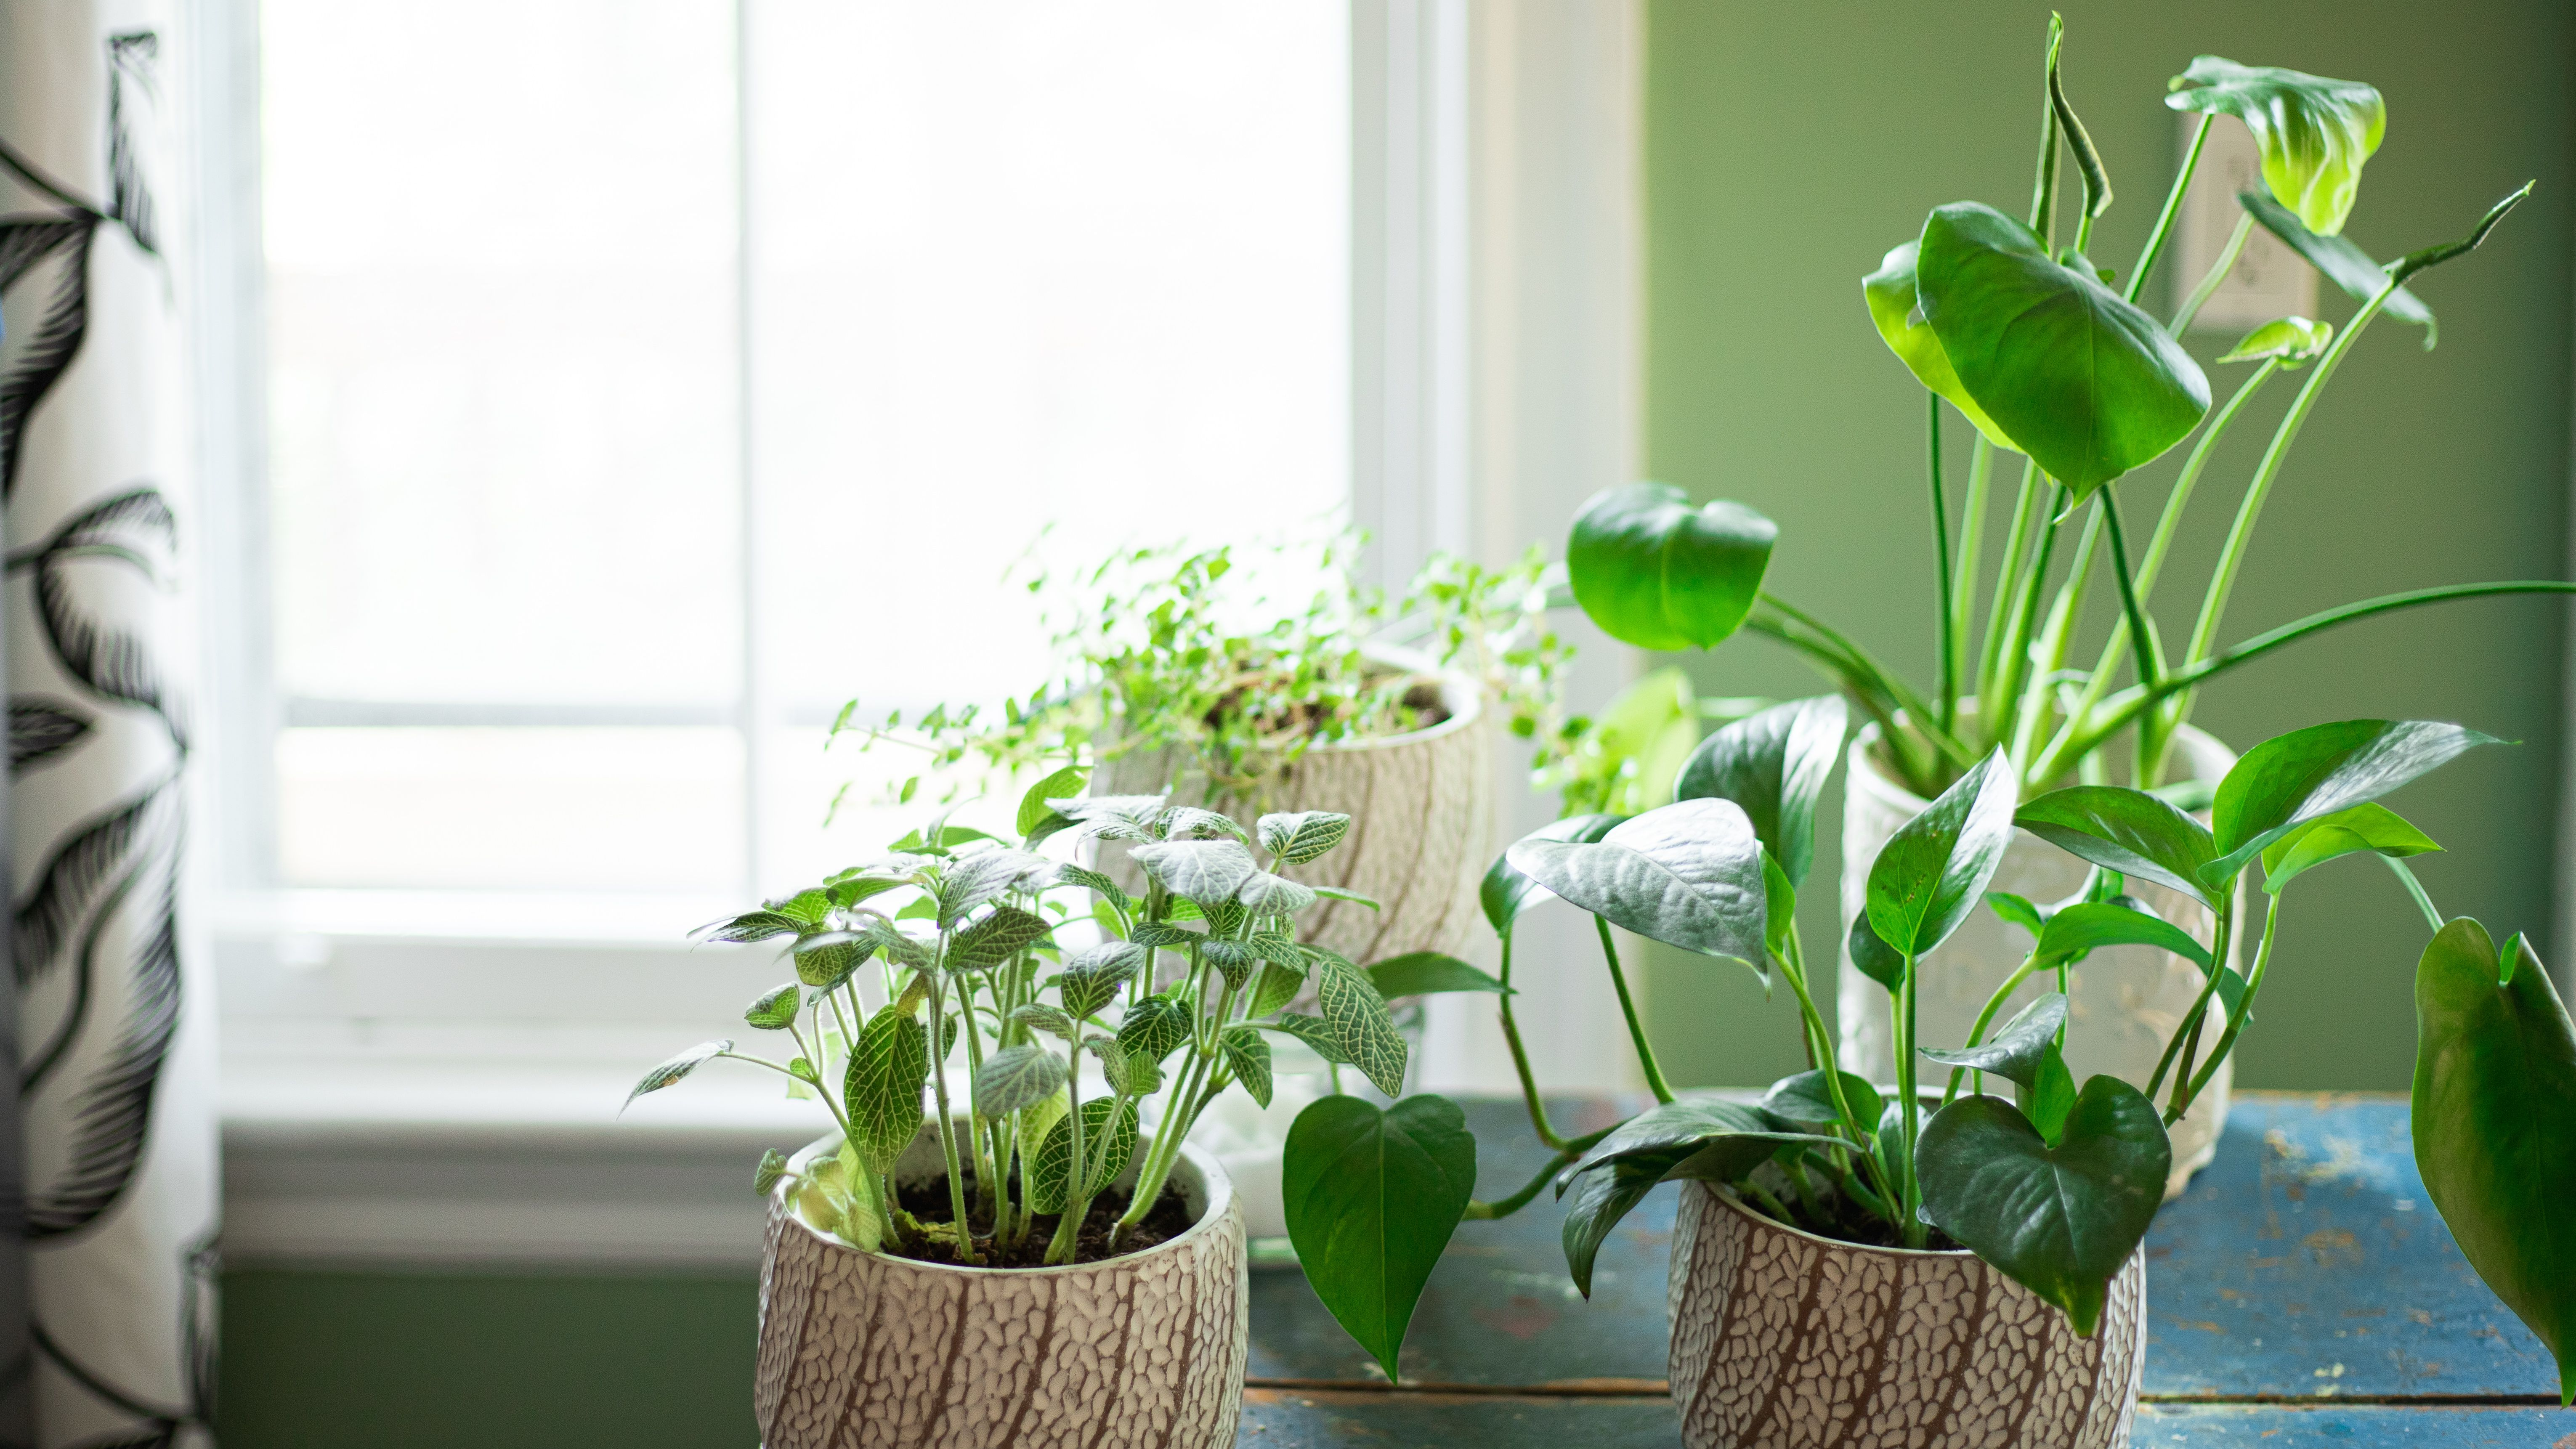 12 Best Houseplants For Sunny Windows,New York Times Travel Ban To Europe